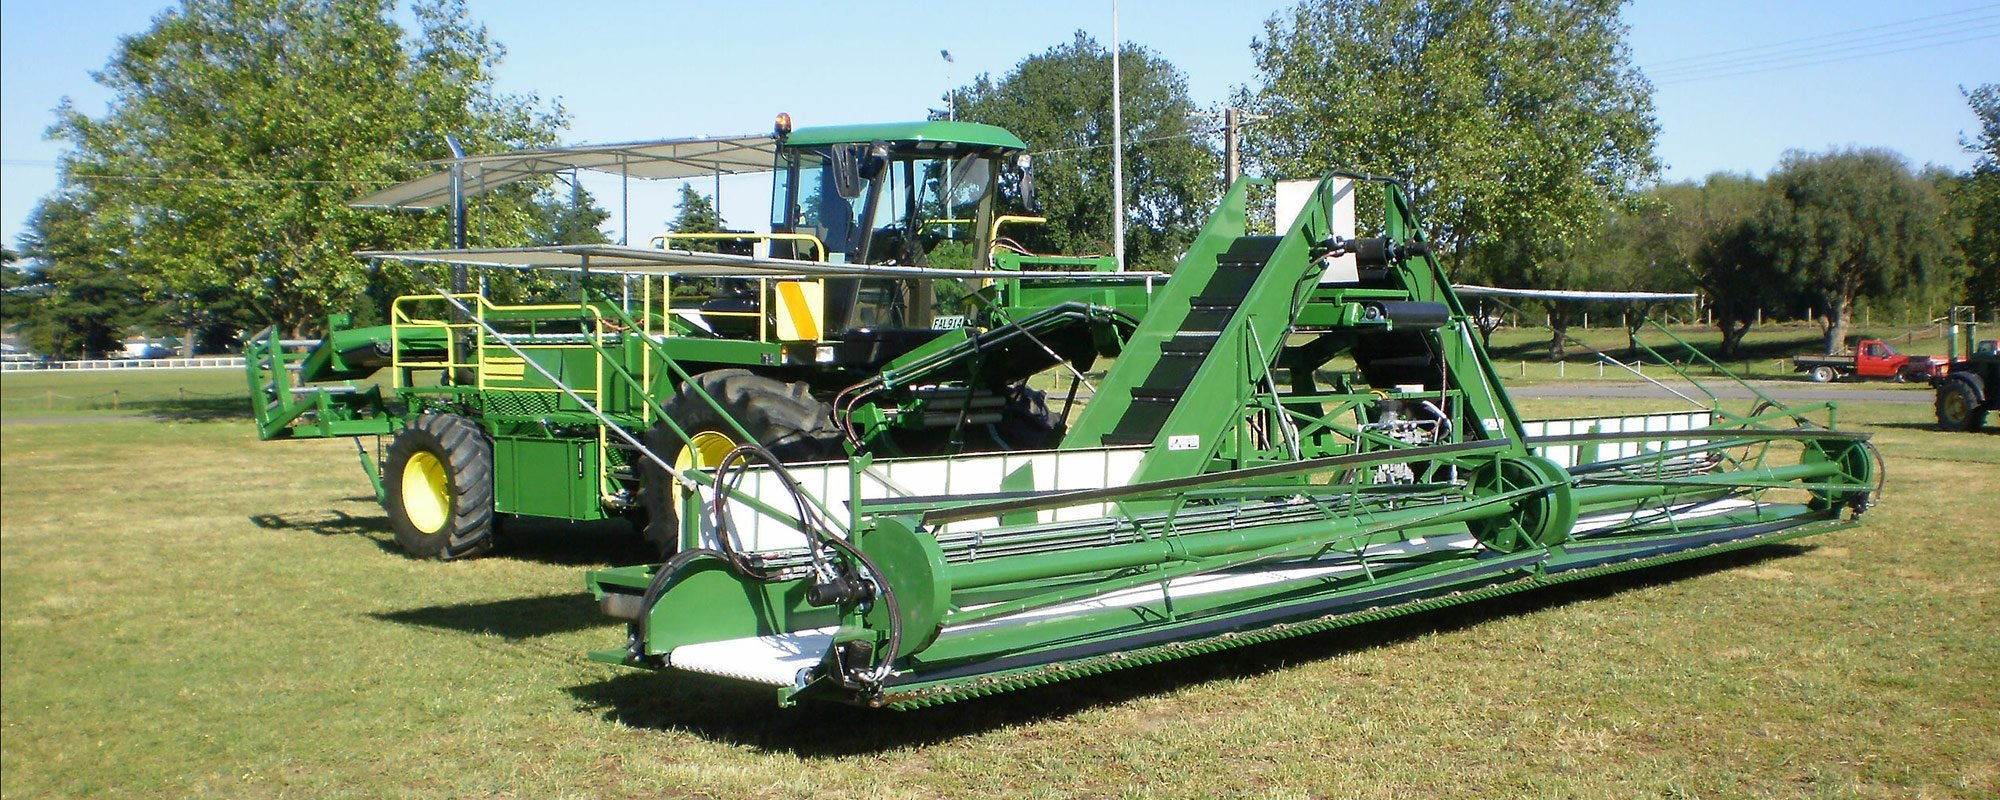 View of a big farm machine